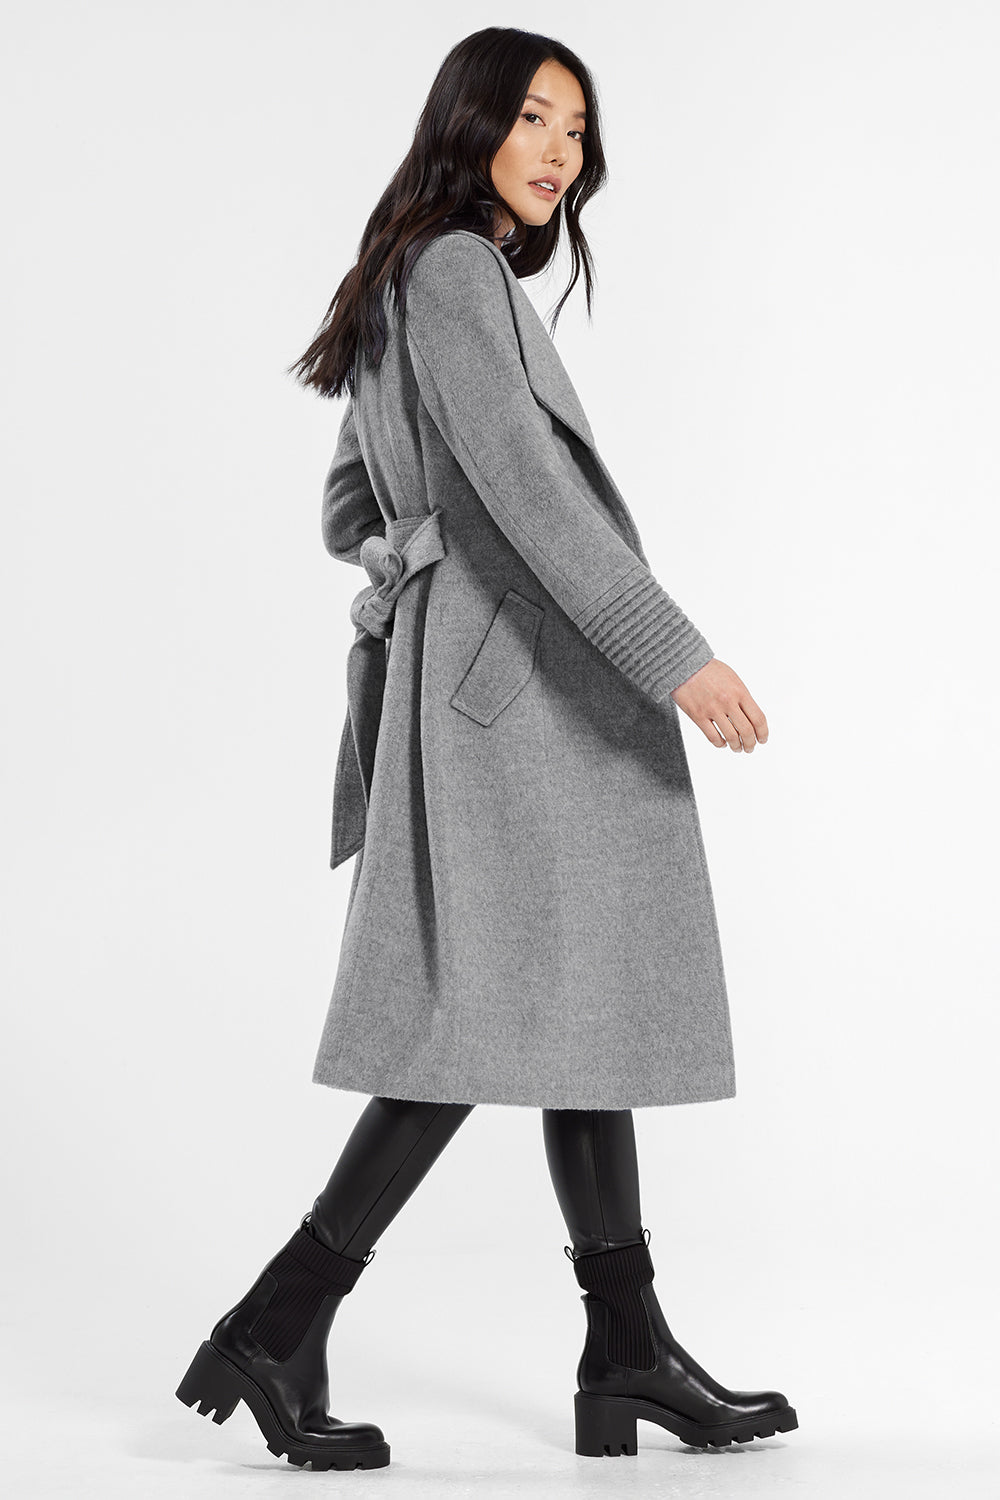 Sentaler Classic Long Coat with Shawl Collar featured in Baby Alpaca and available in Shale Grey. Seen in action.